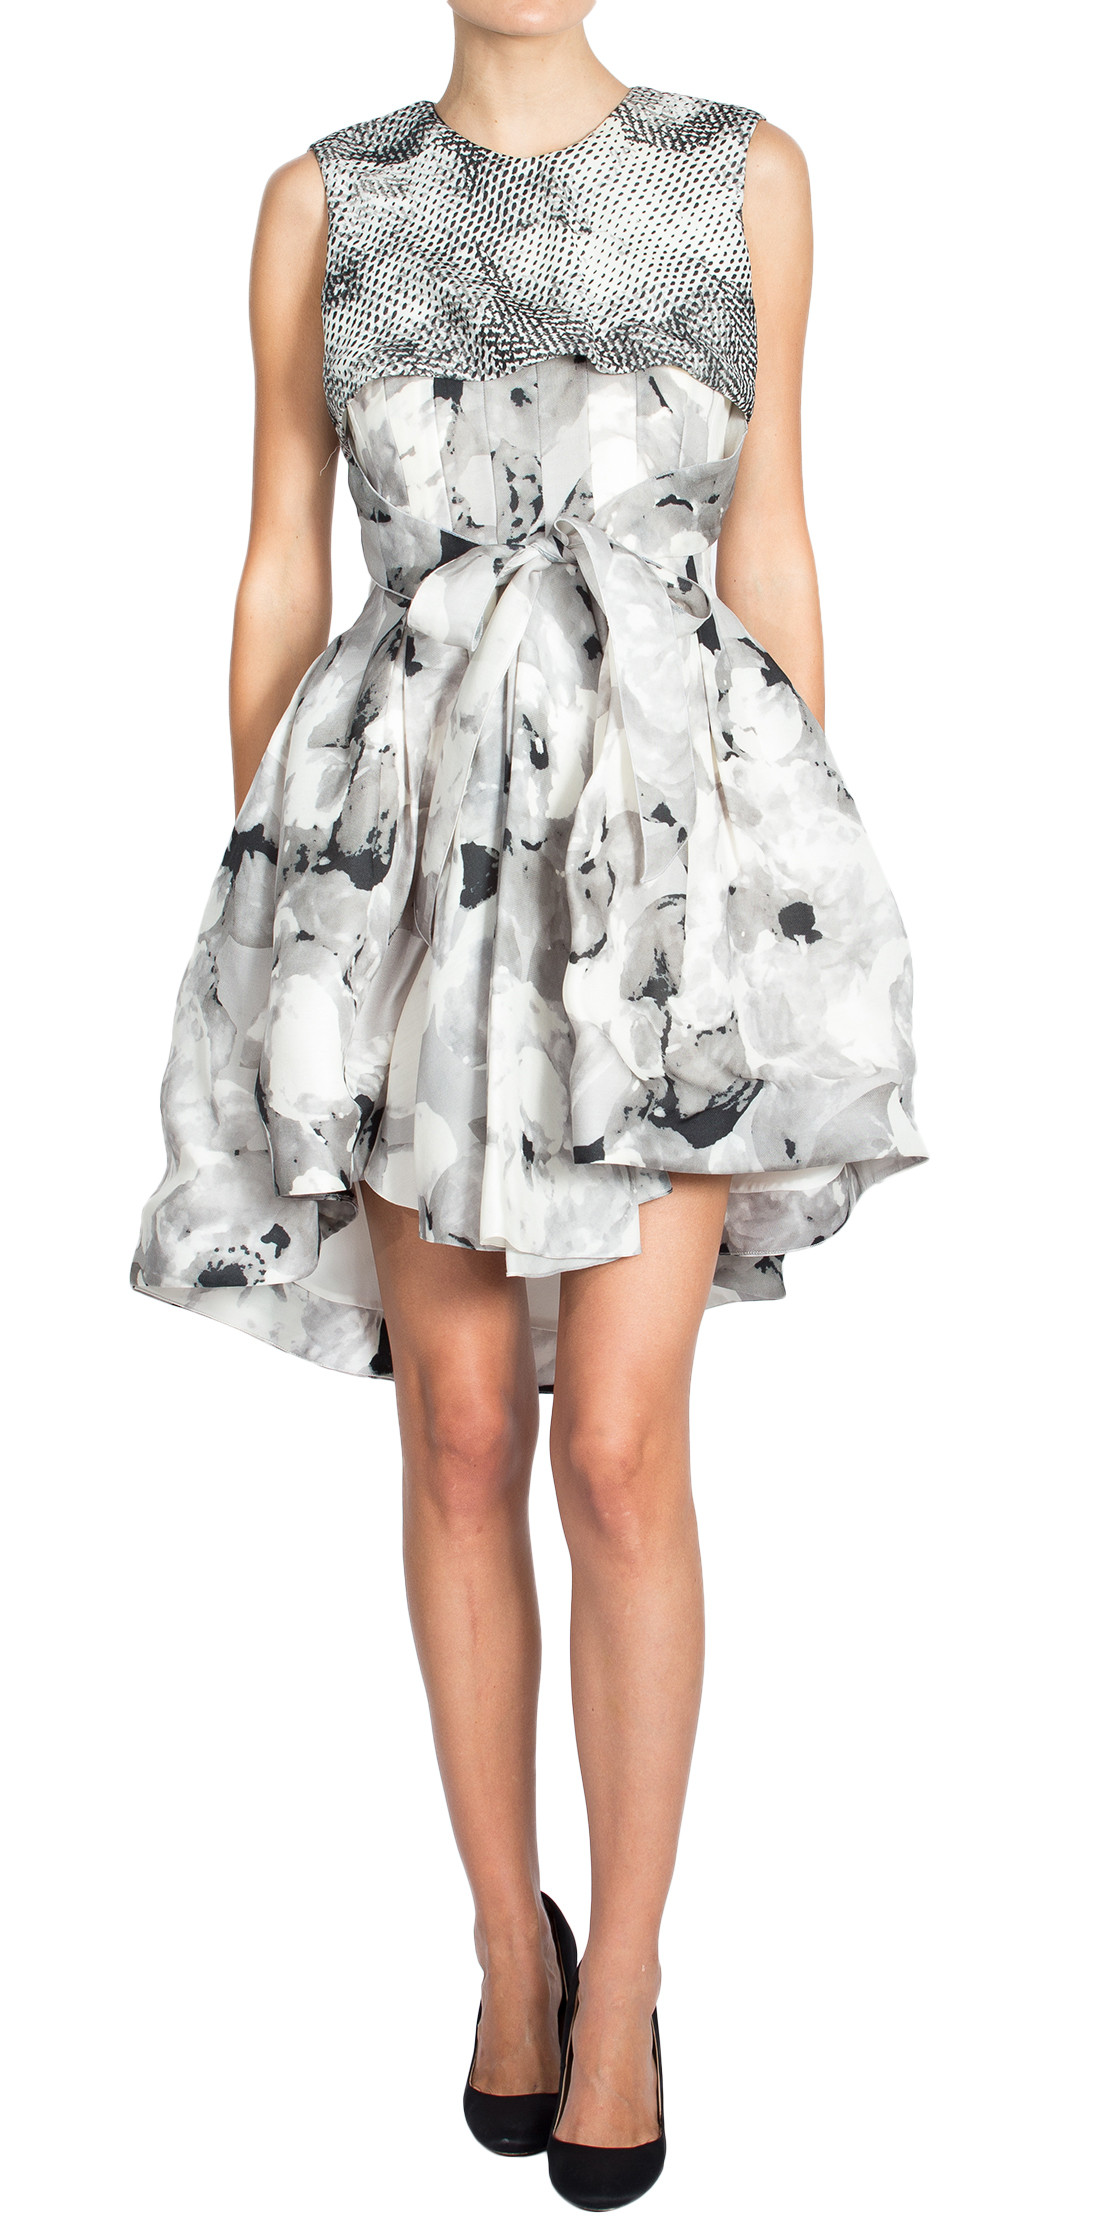 Christian Dior Pleated Print Dress